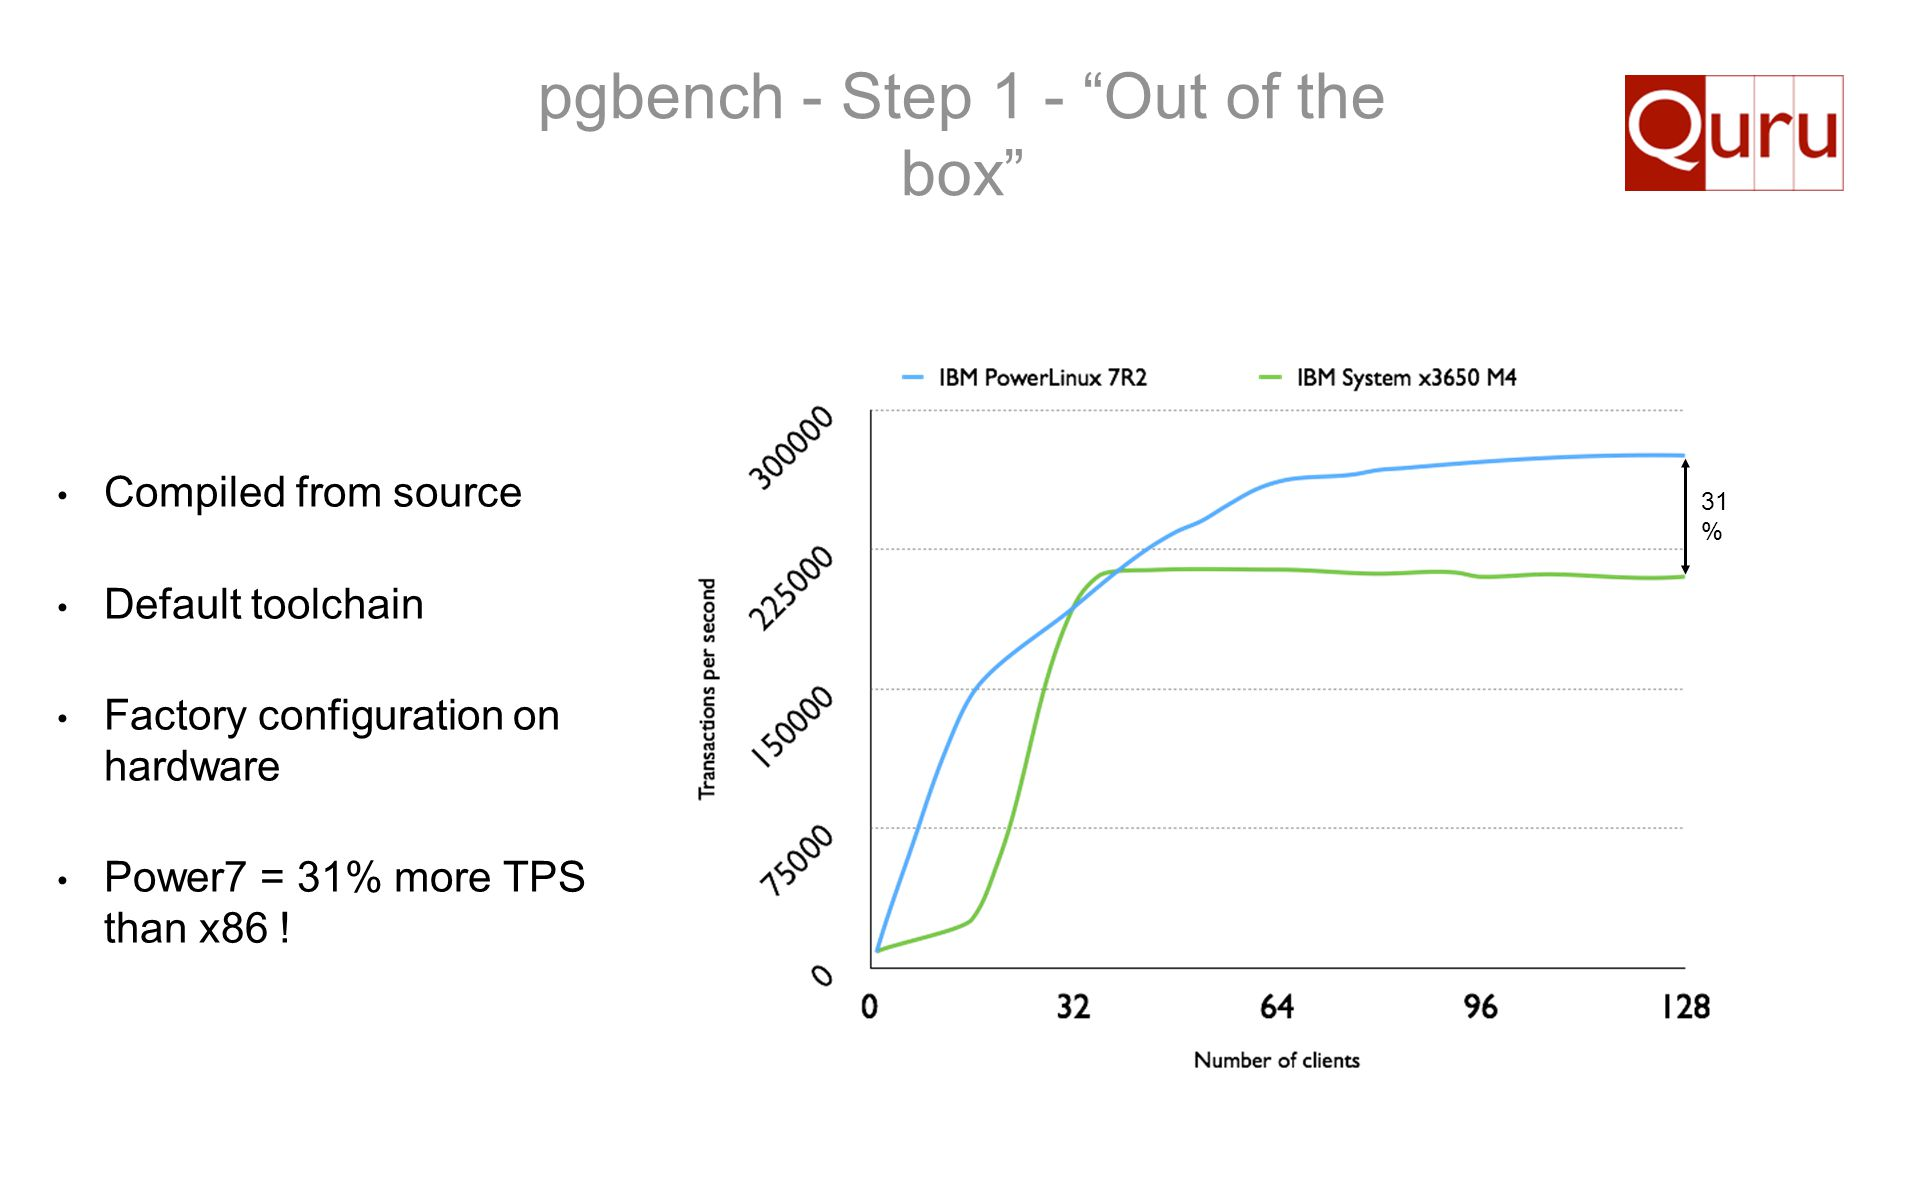 pgbench - Step 1 - Out of the box